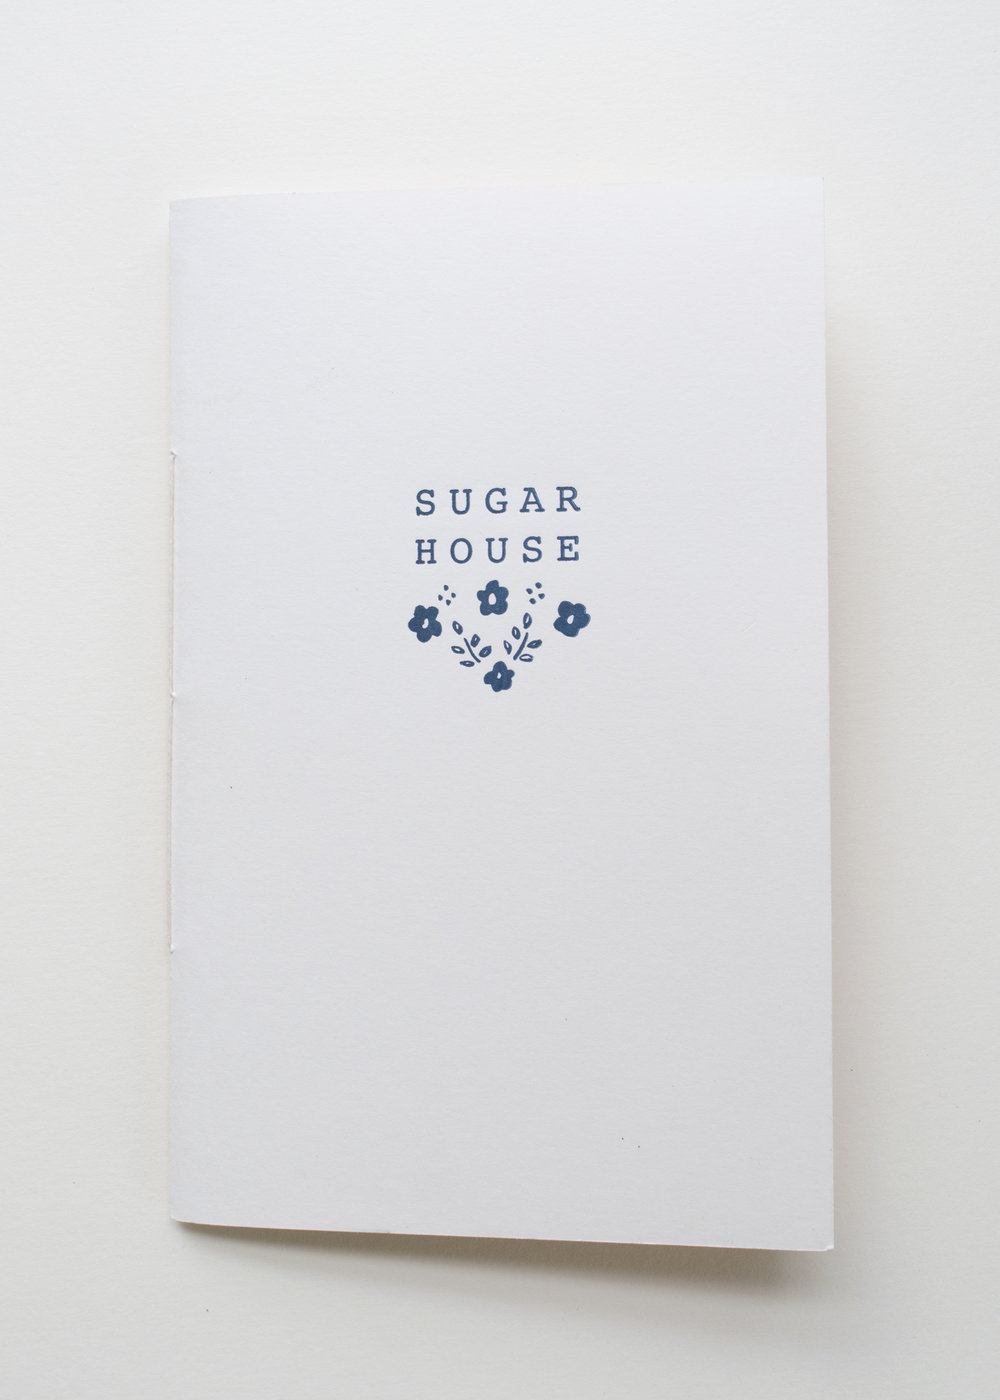 Sugar House (series) by Jessica Lewis Stevens